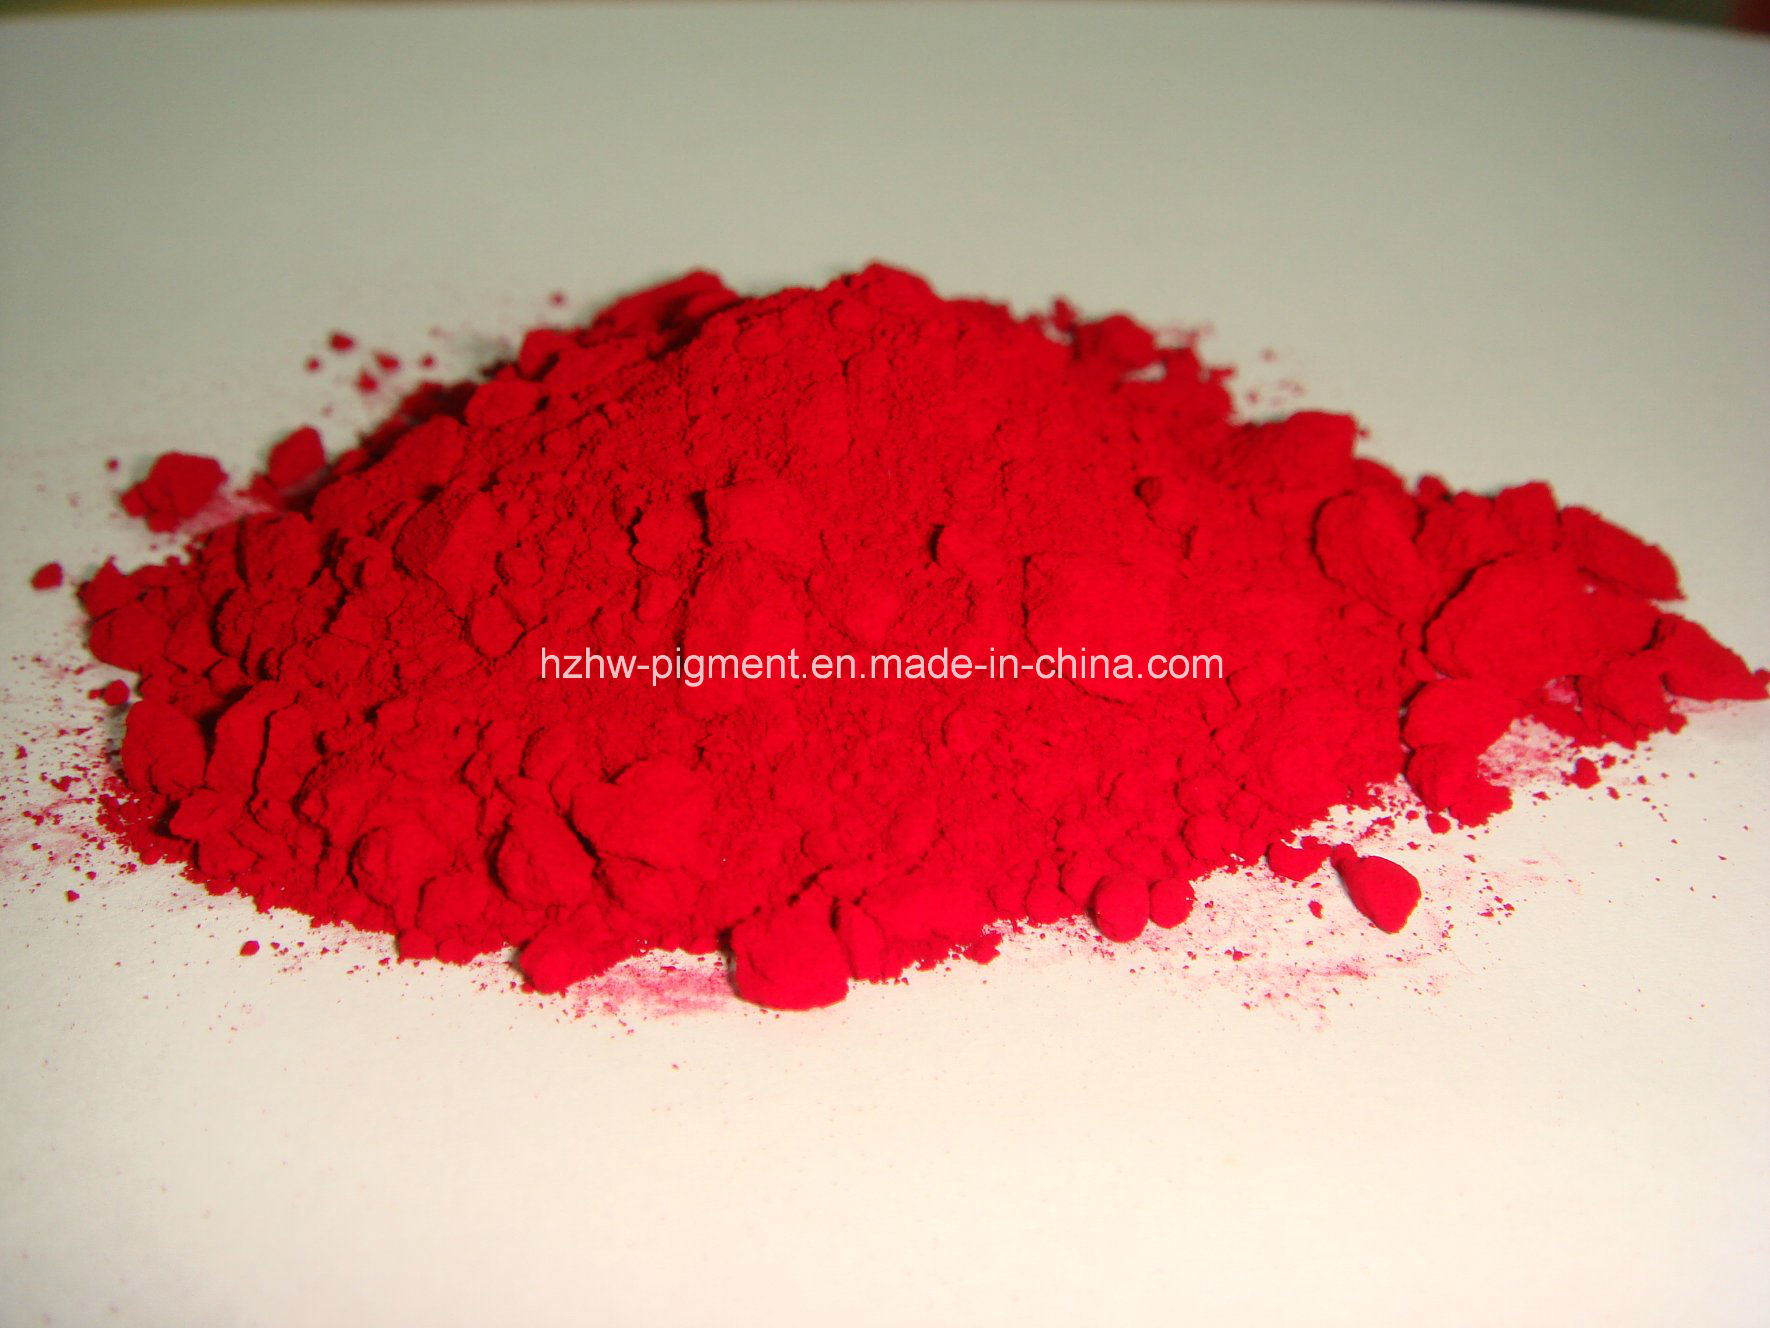 Organic Pigment Brilliant Red (C. I. P. R 22)